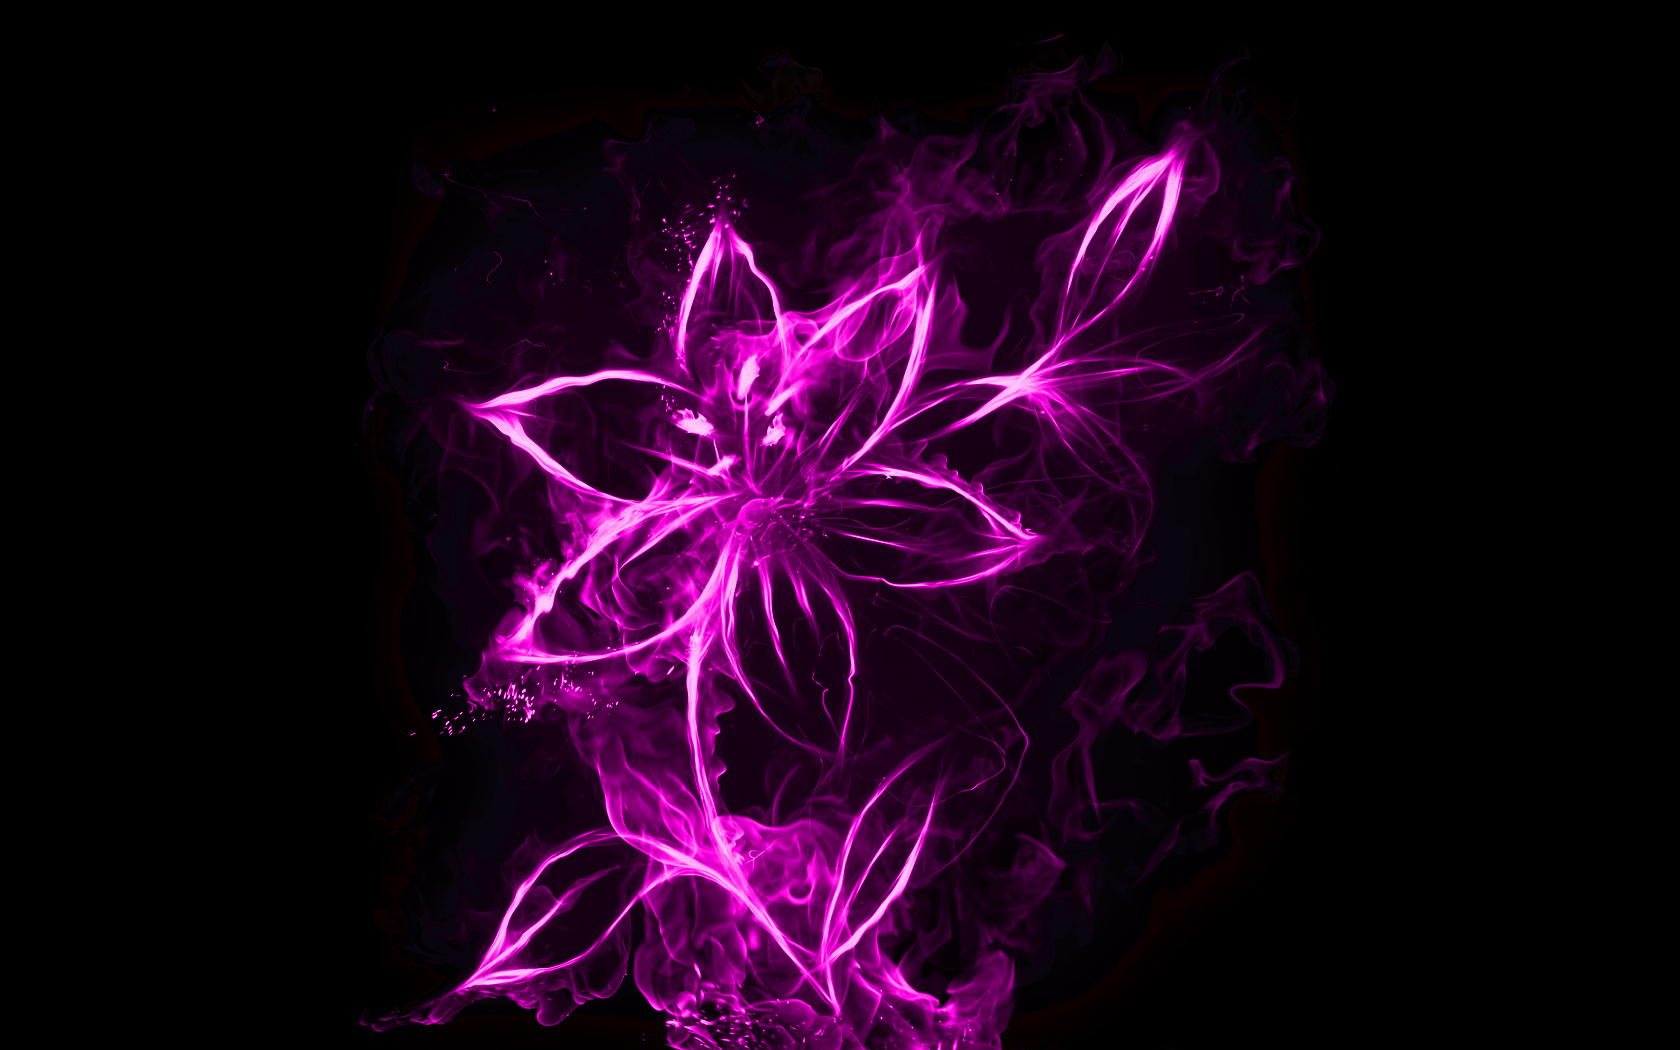 Abstract flowers wallpapers